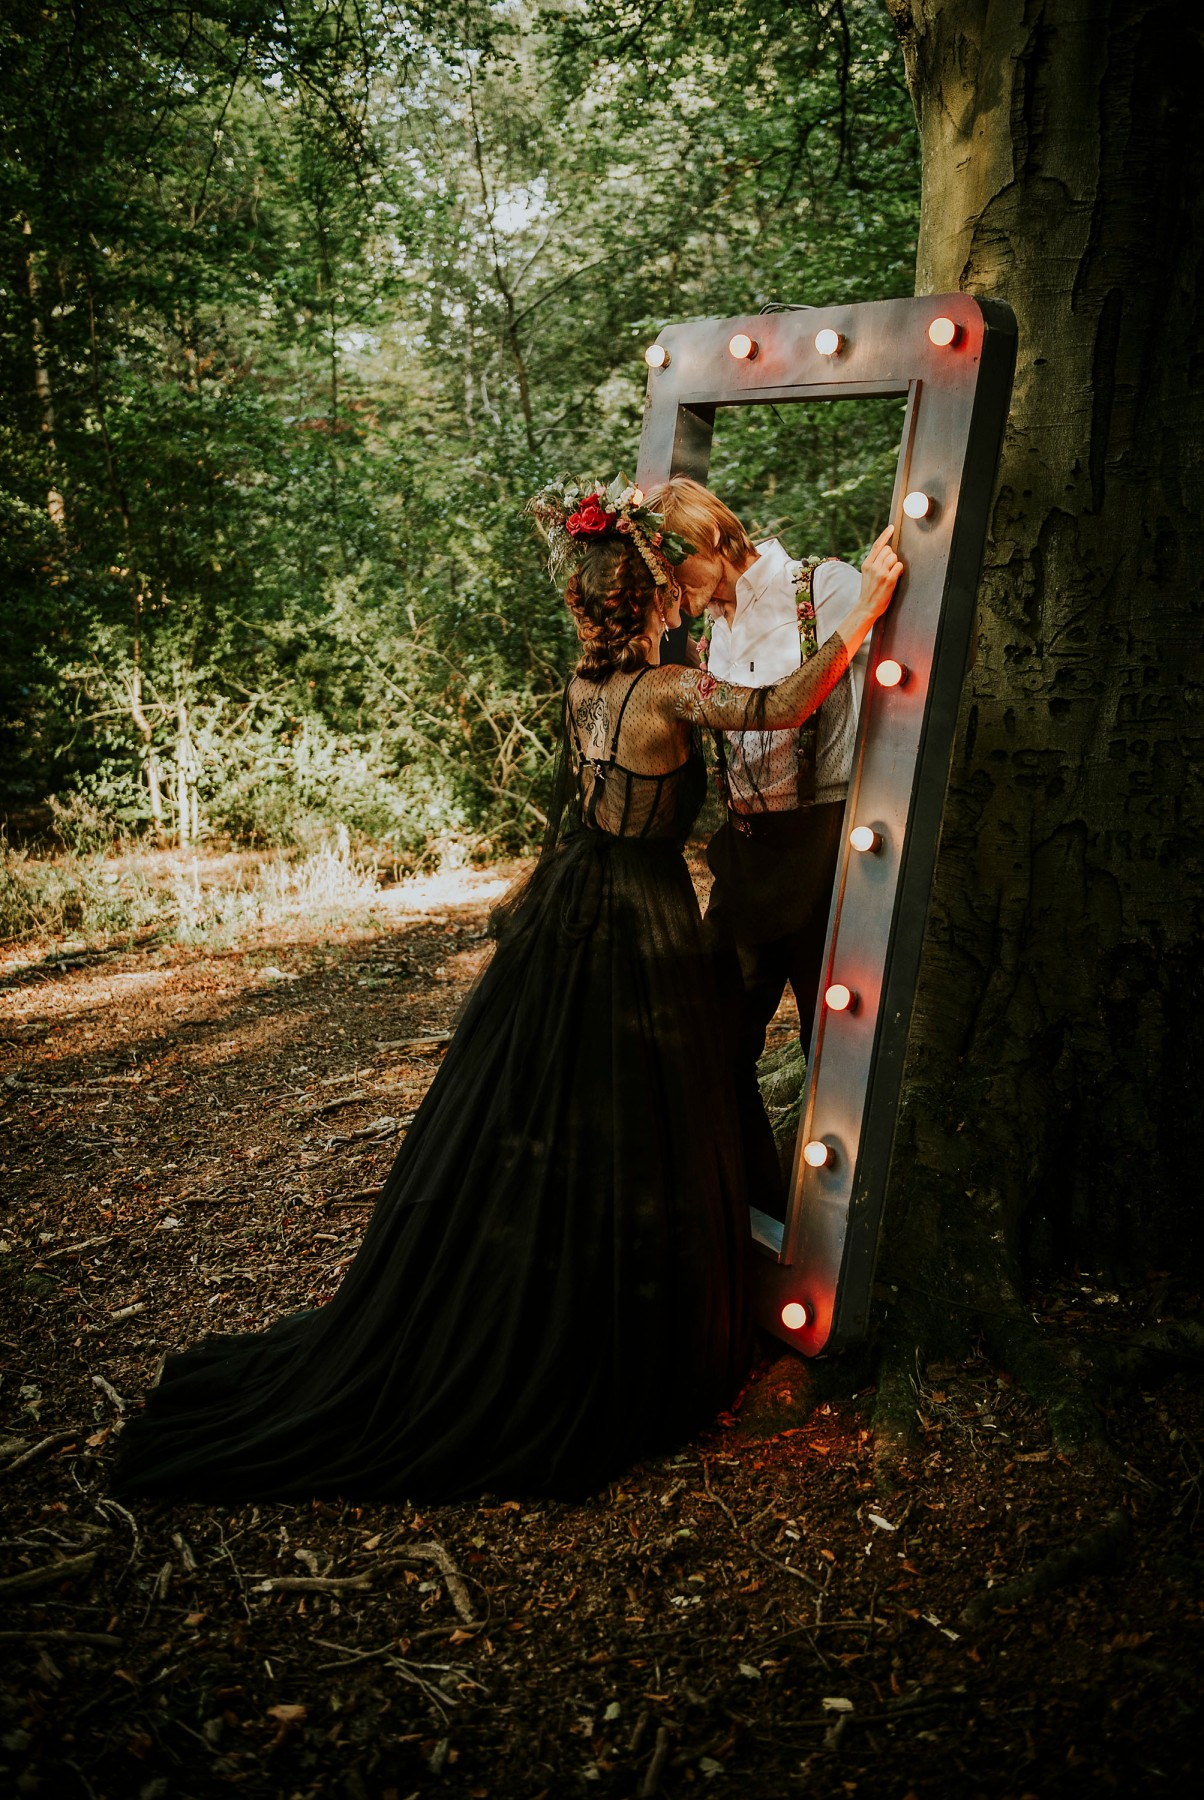 circus woodland wedding - ethereal wedding inspiration - black wedding dress - quirky wedding props